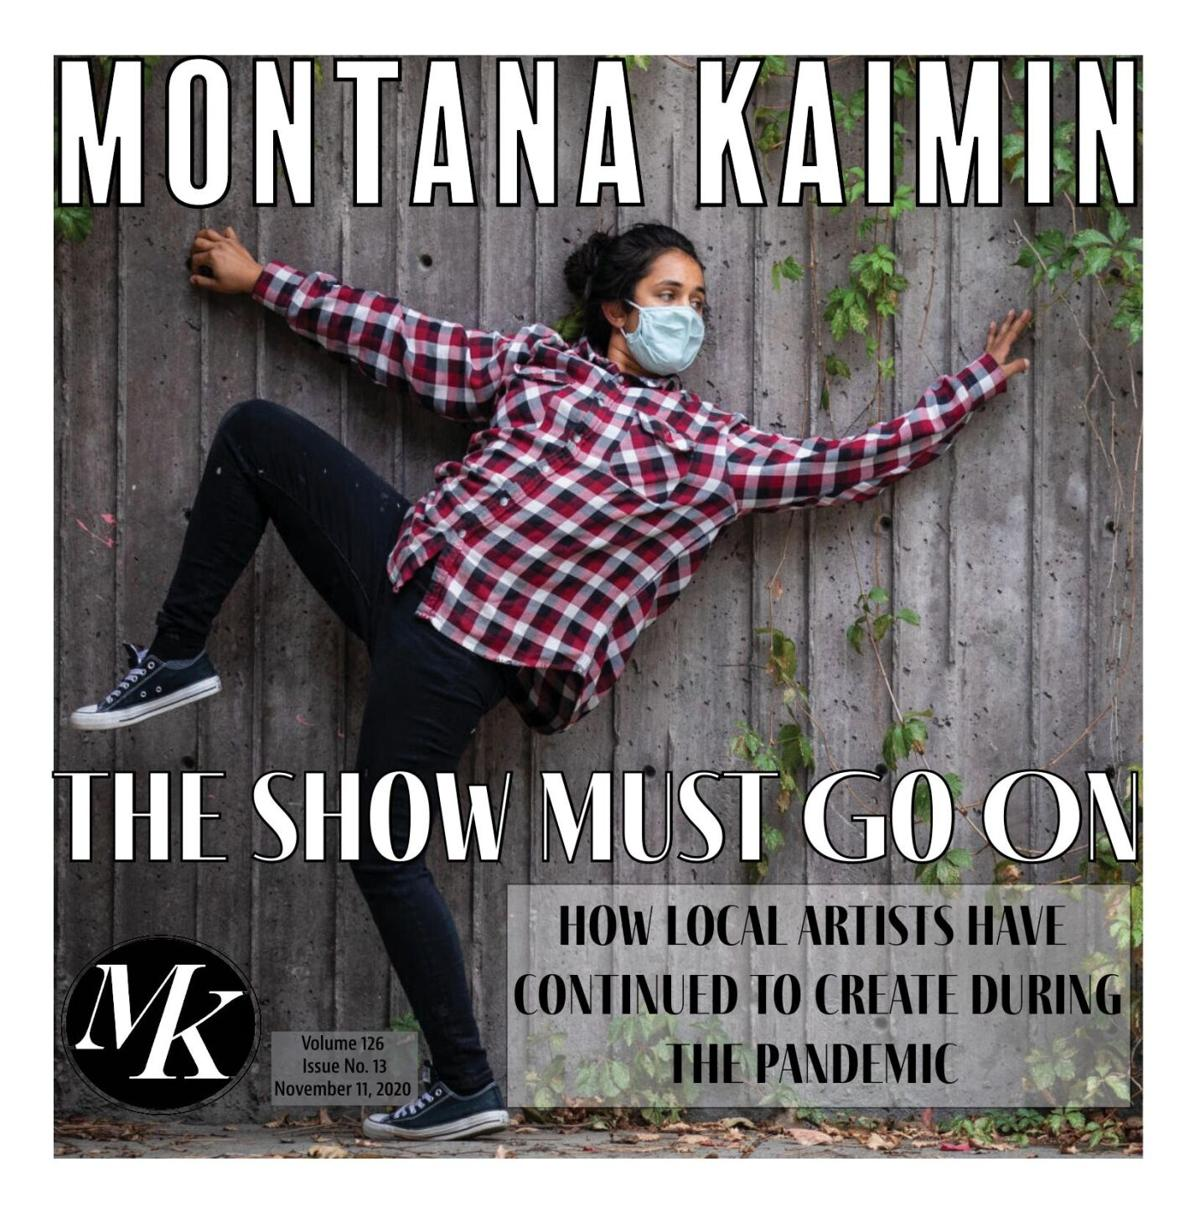 Montana Kaimin | Vol 123 Issue no. 013 11.11.2020